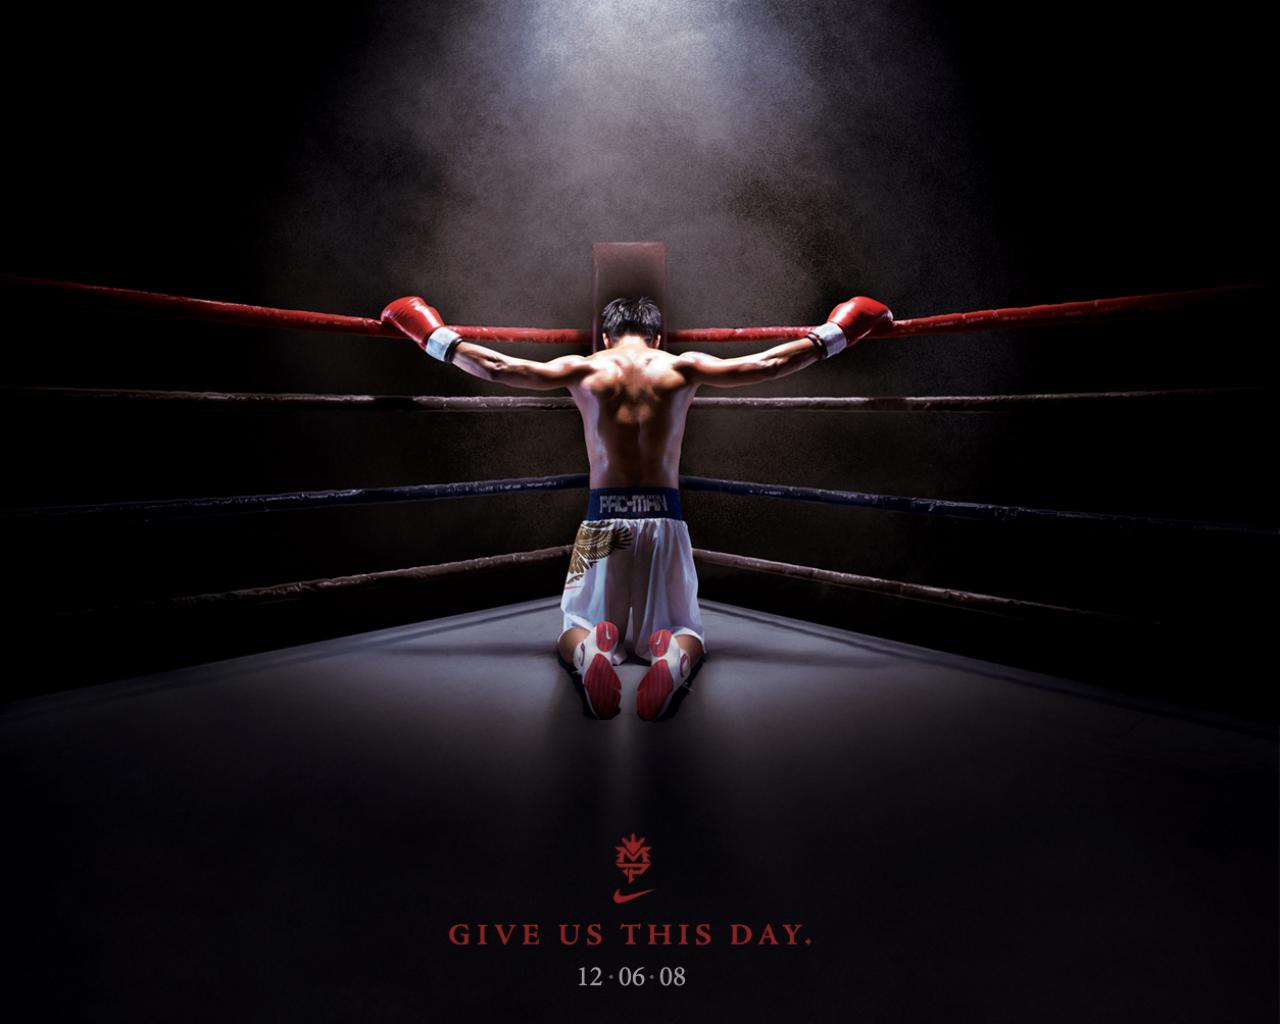 Обои Give us this day boxing 1280x1024